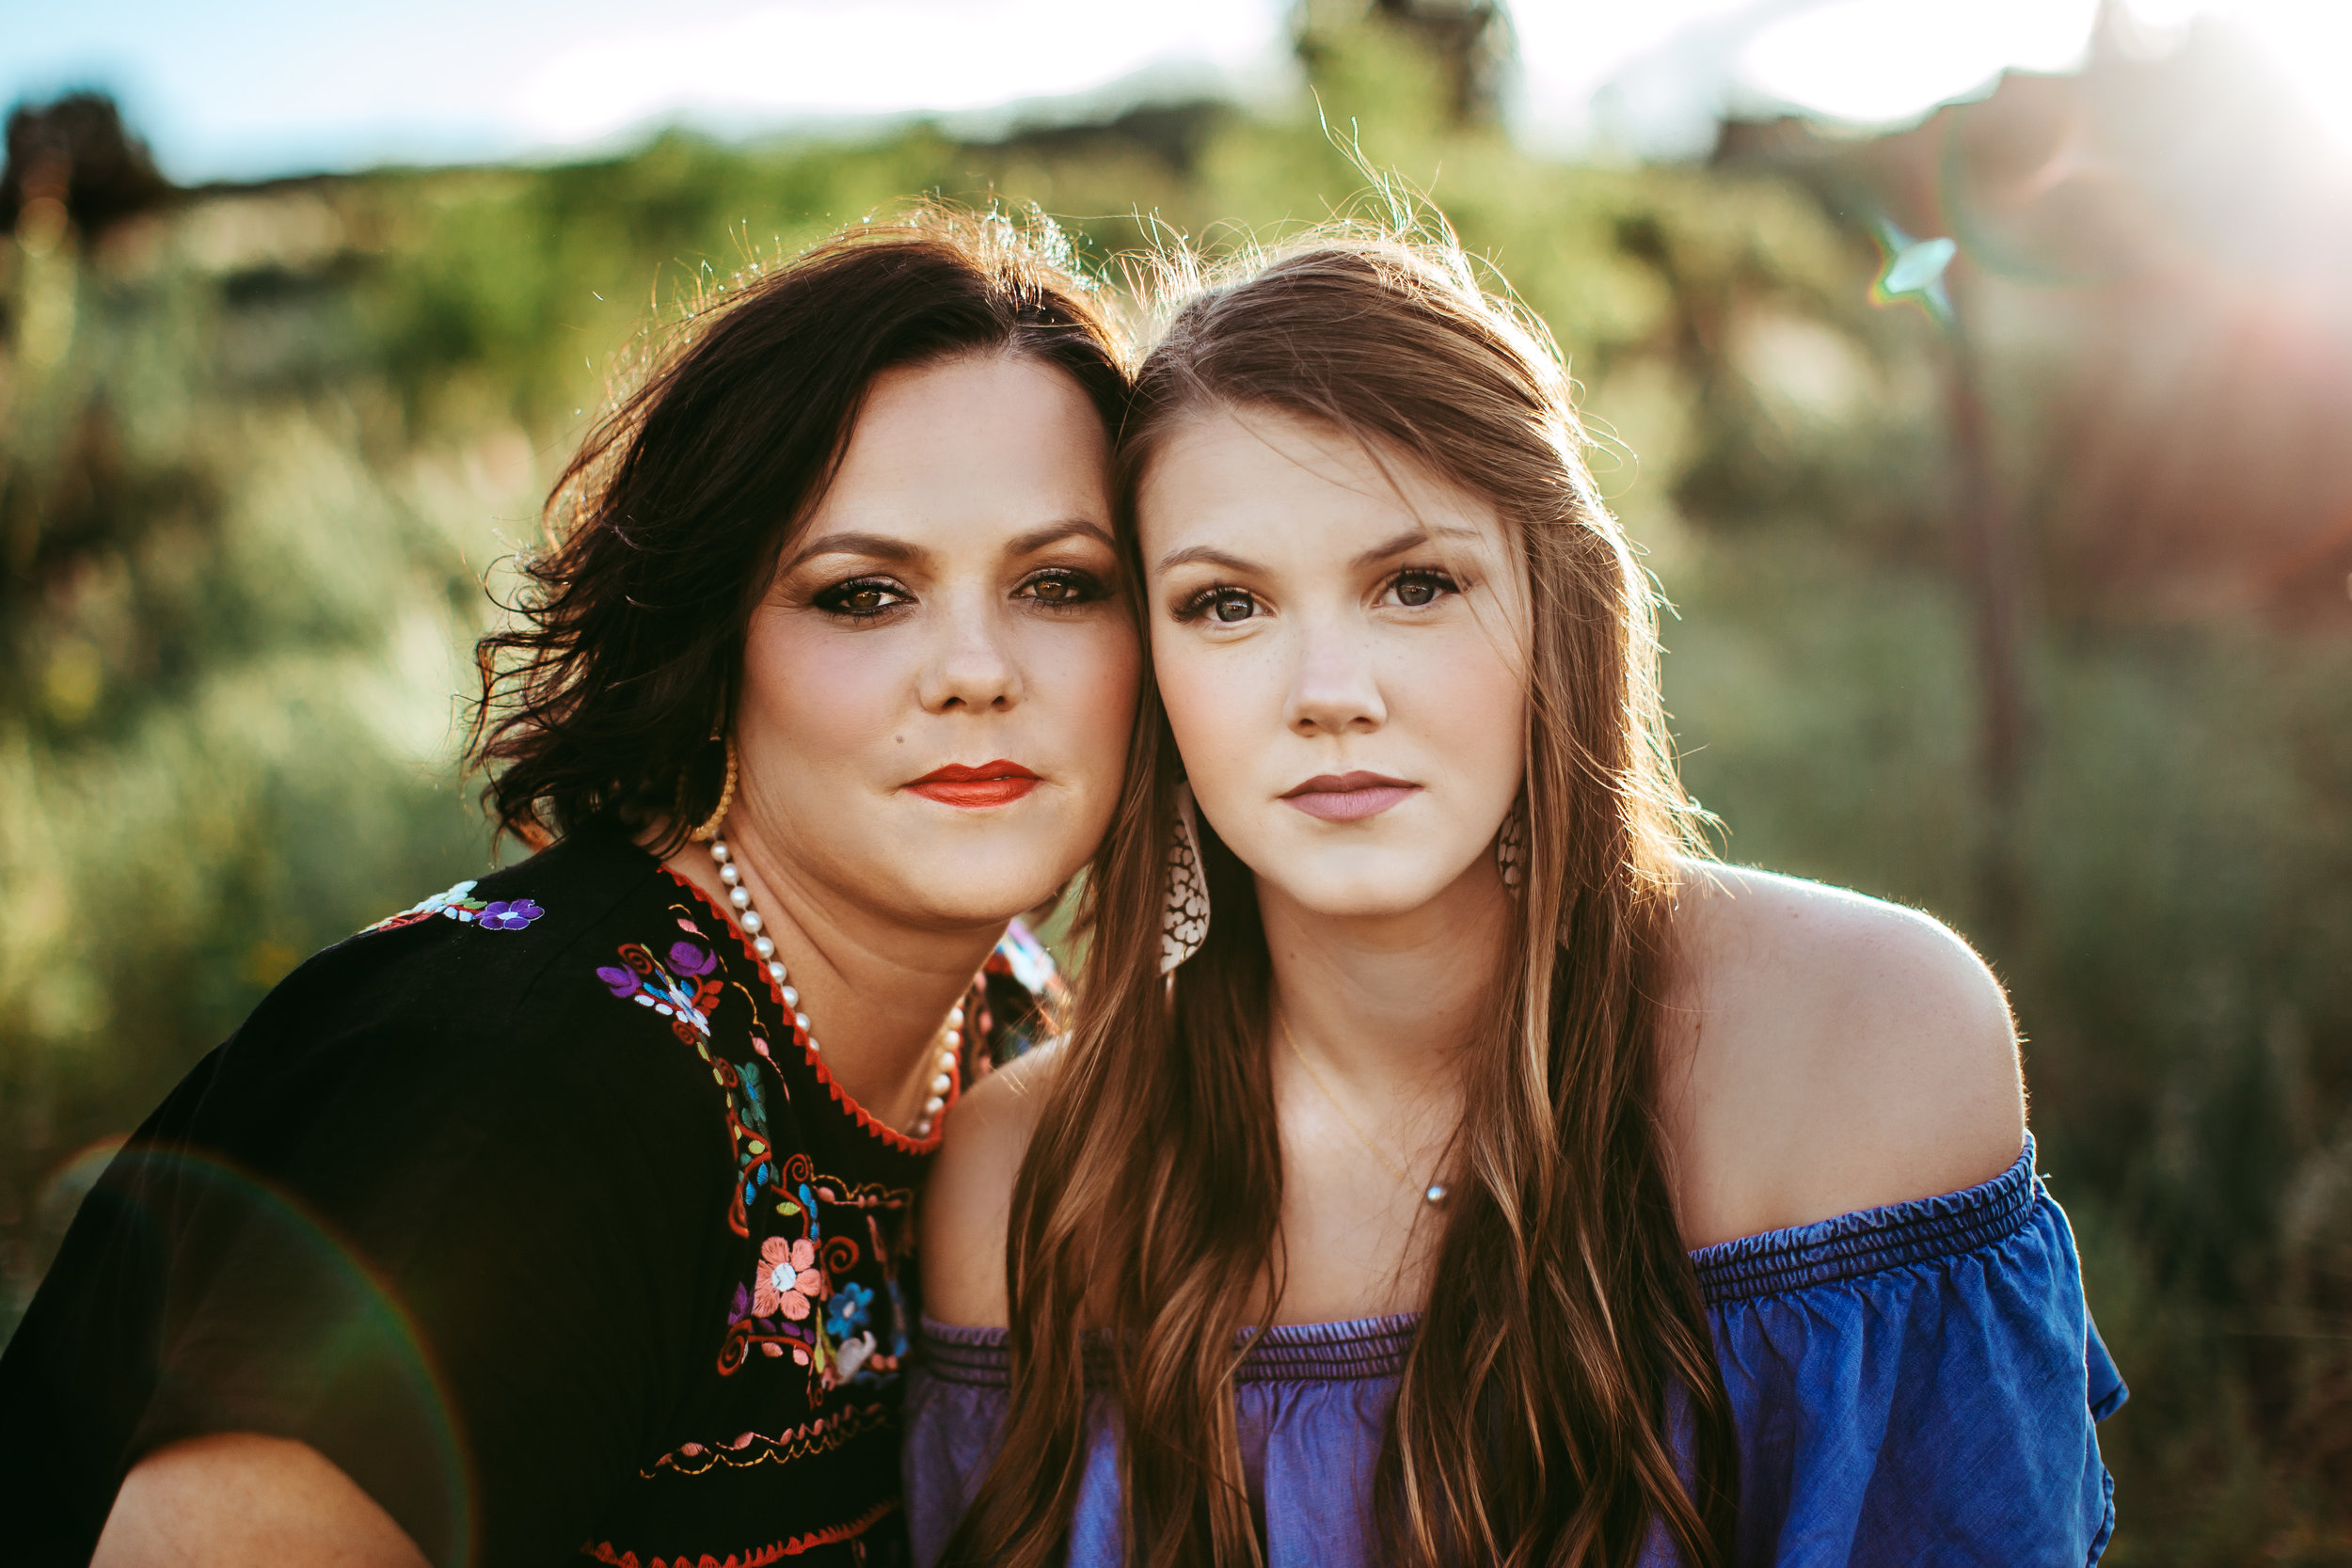 Close up of mother and daughter focusing on their features and similarities in their faces #tealawardphotography #texasfamilyphotographer #amarillophotographer #amarillofamilyphotographer #lifestylephotography #emotionalphotography #familyphotosoot #family #lovingsiblings #purejoy #familyphotos #familyphotographer #greatoutdoors